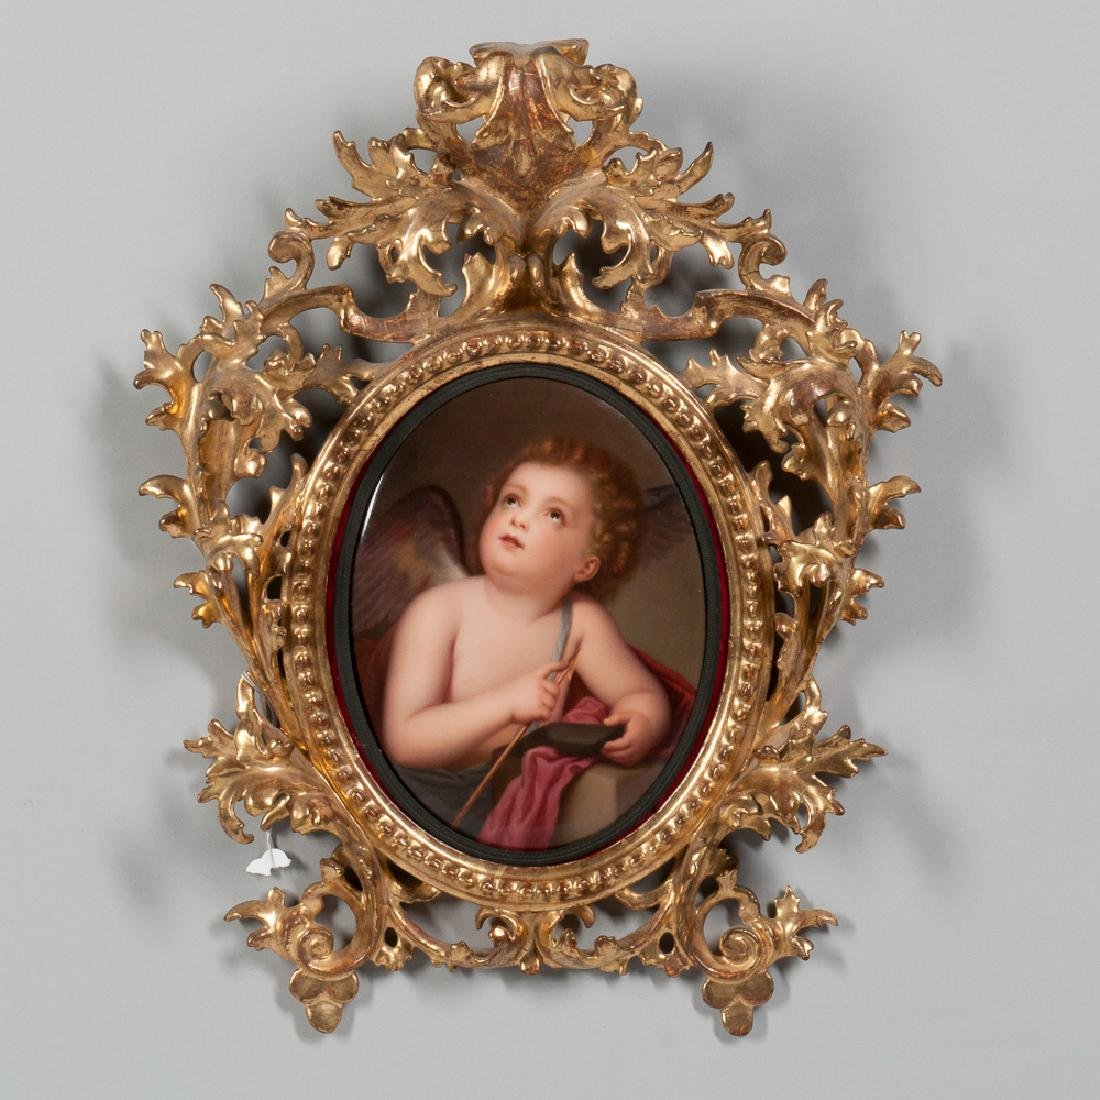 19th C. KPM Porcelain Plaque Depicting an Angel